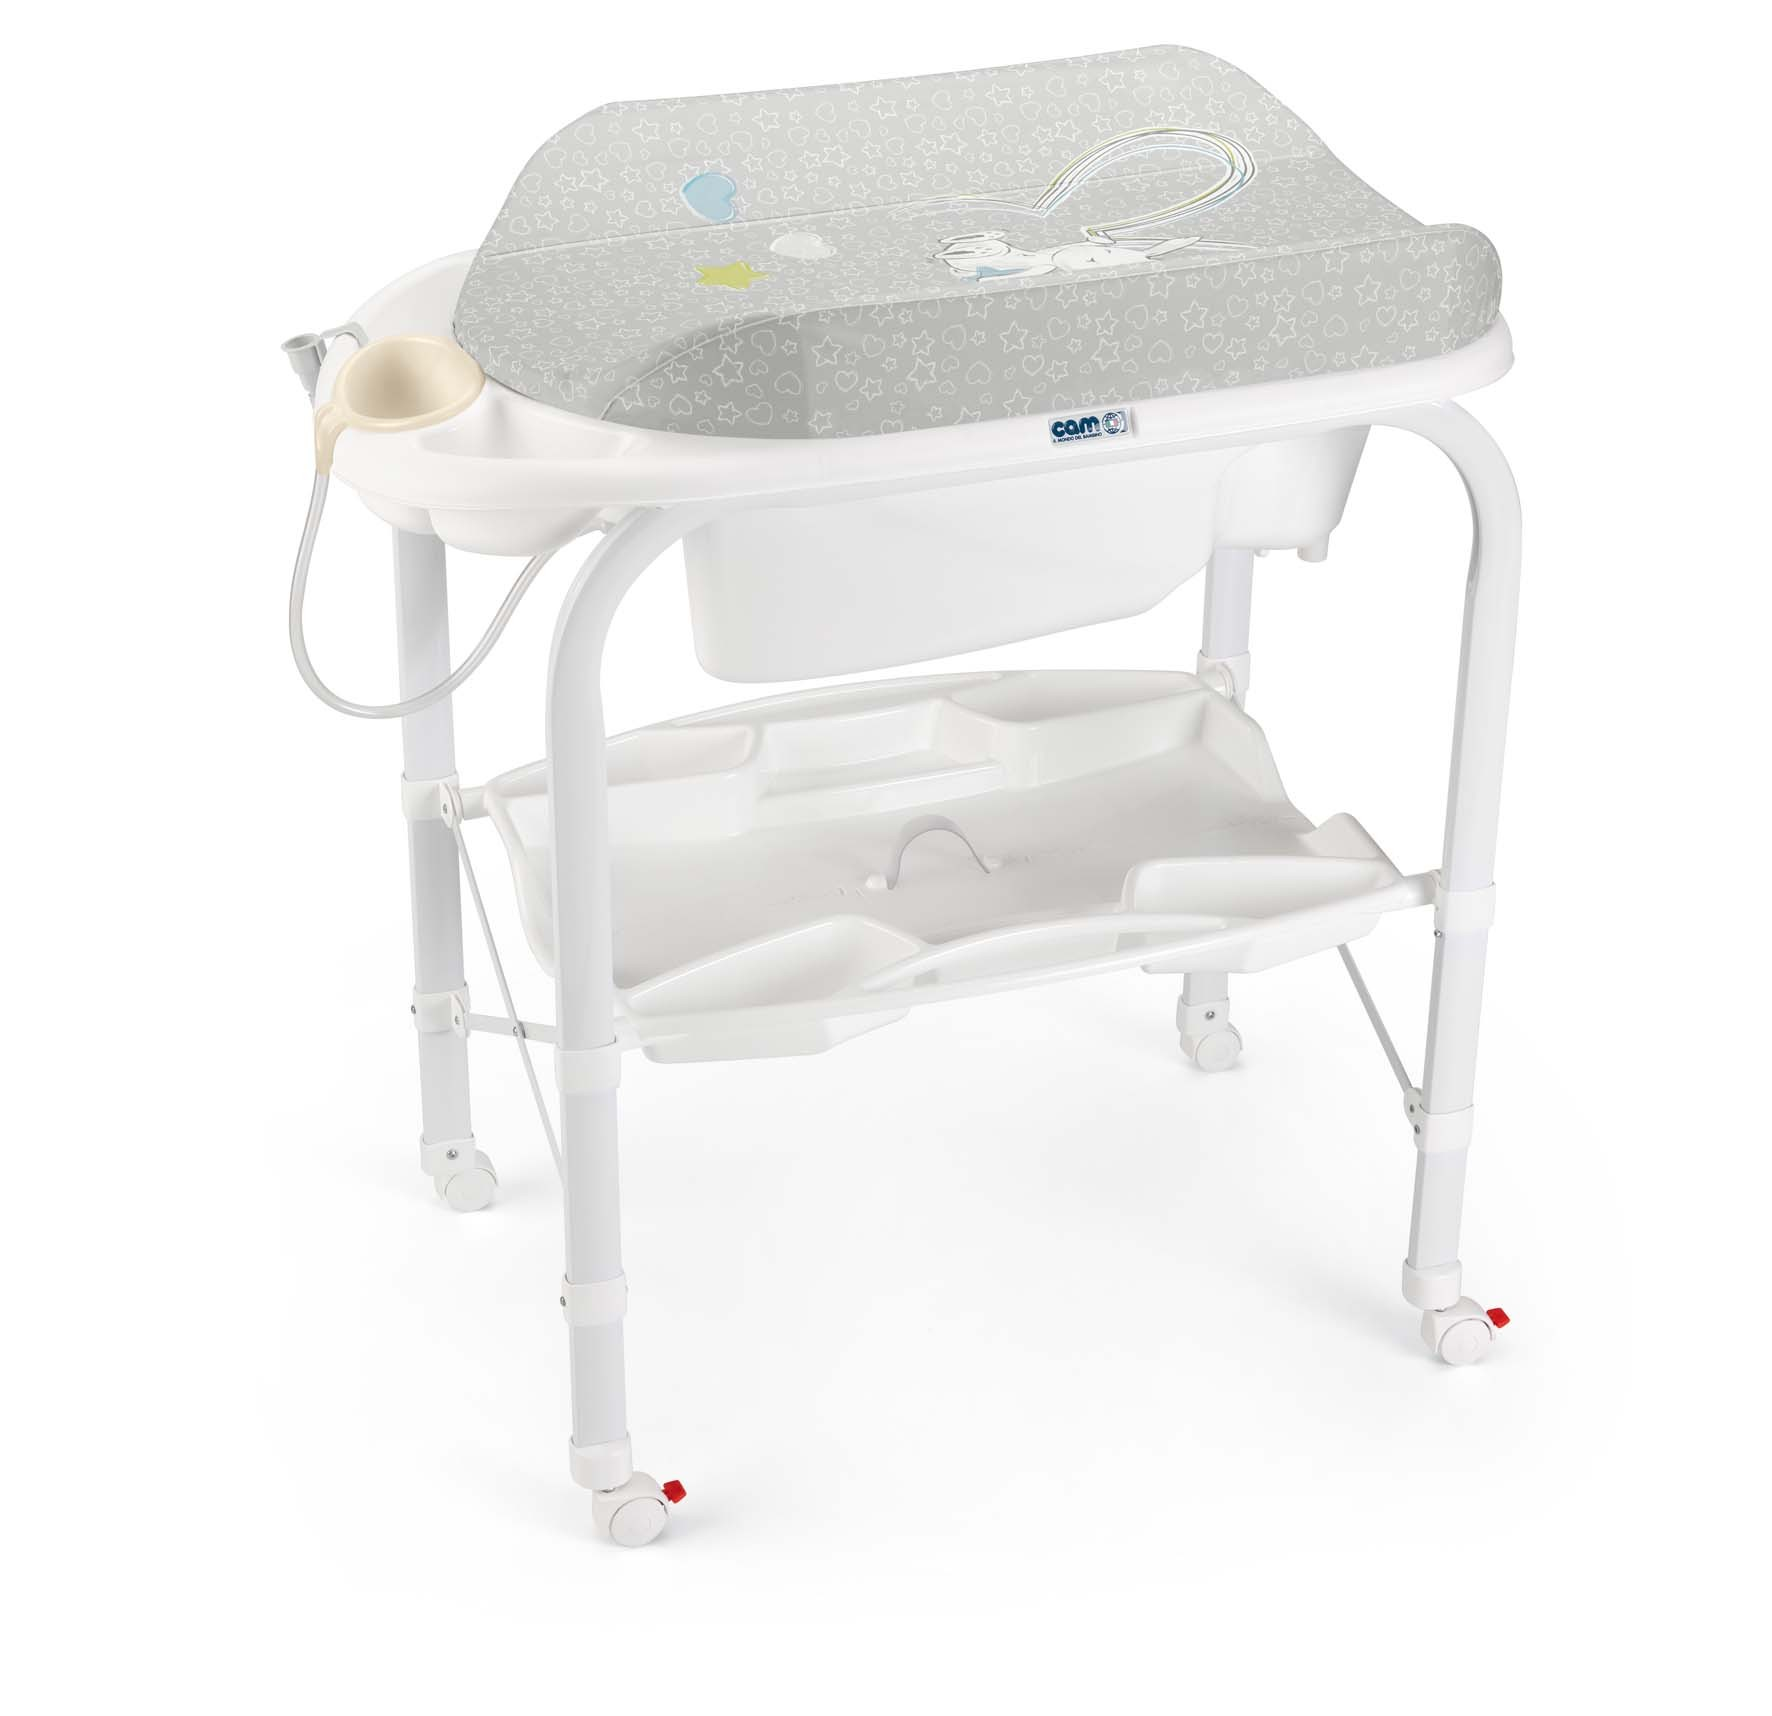 Products Monmartt - Commercial bathroom baby changing table